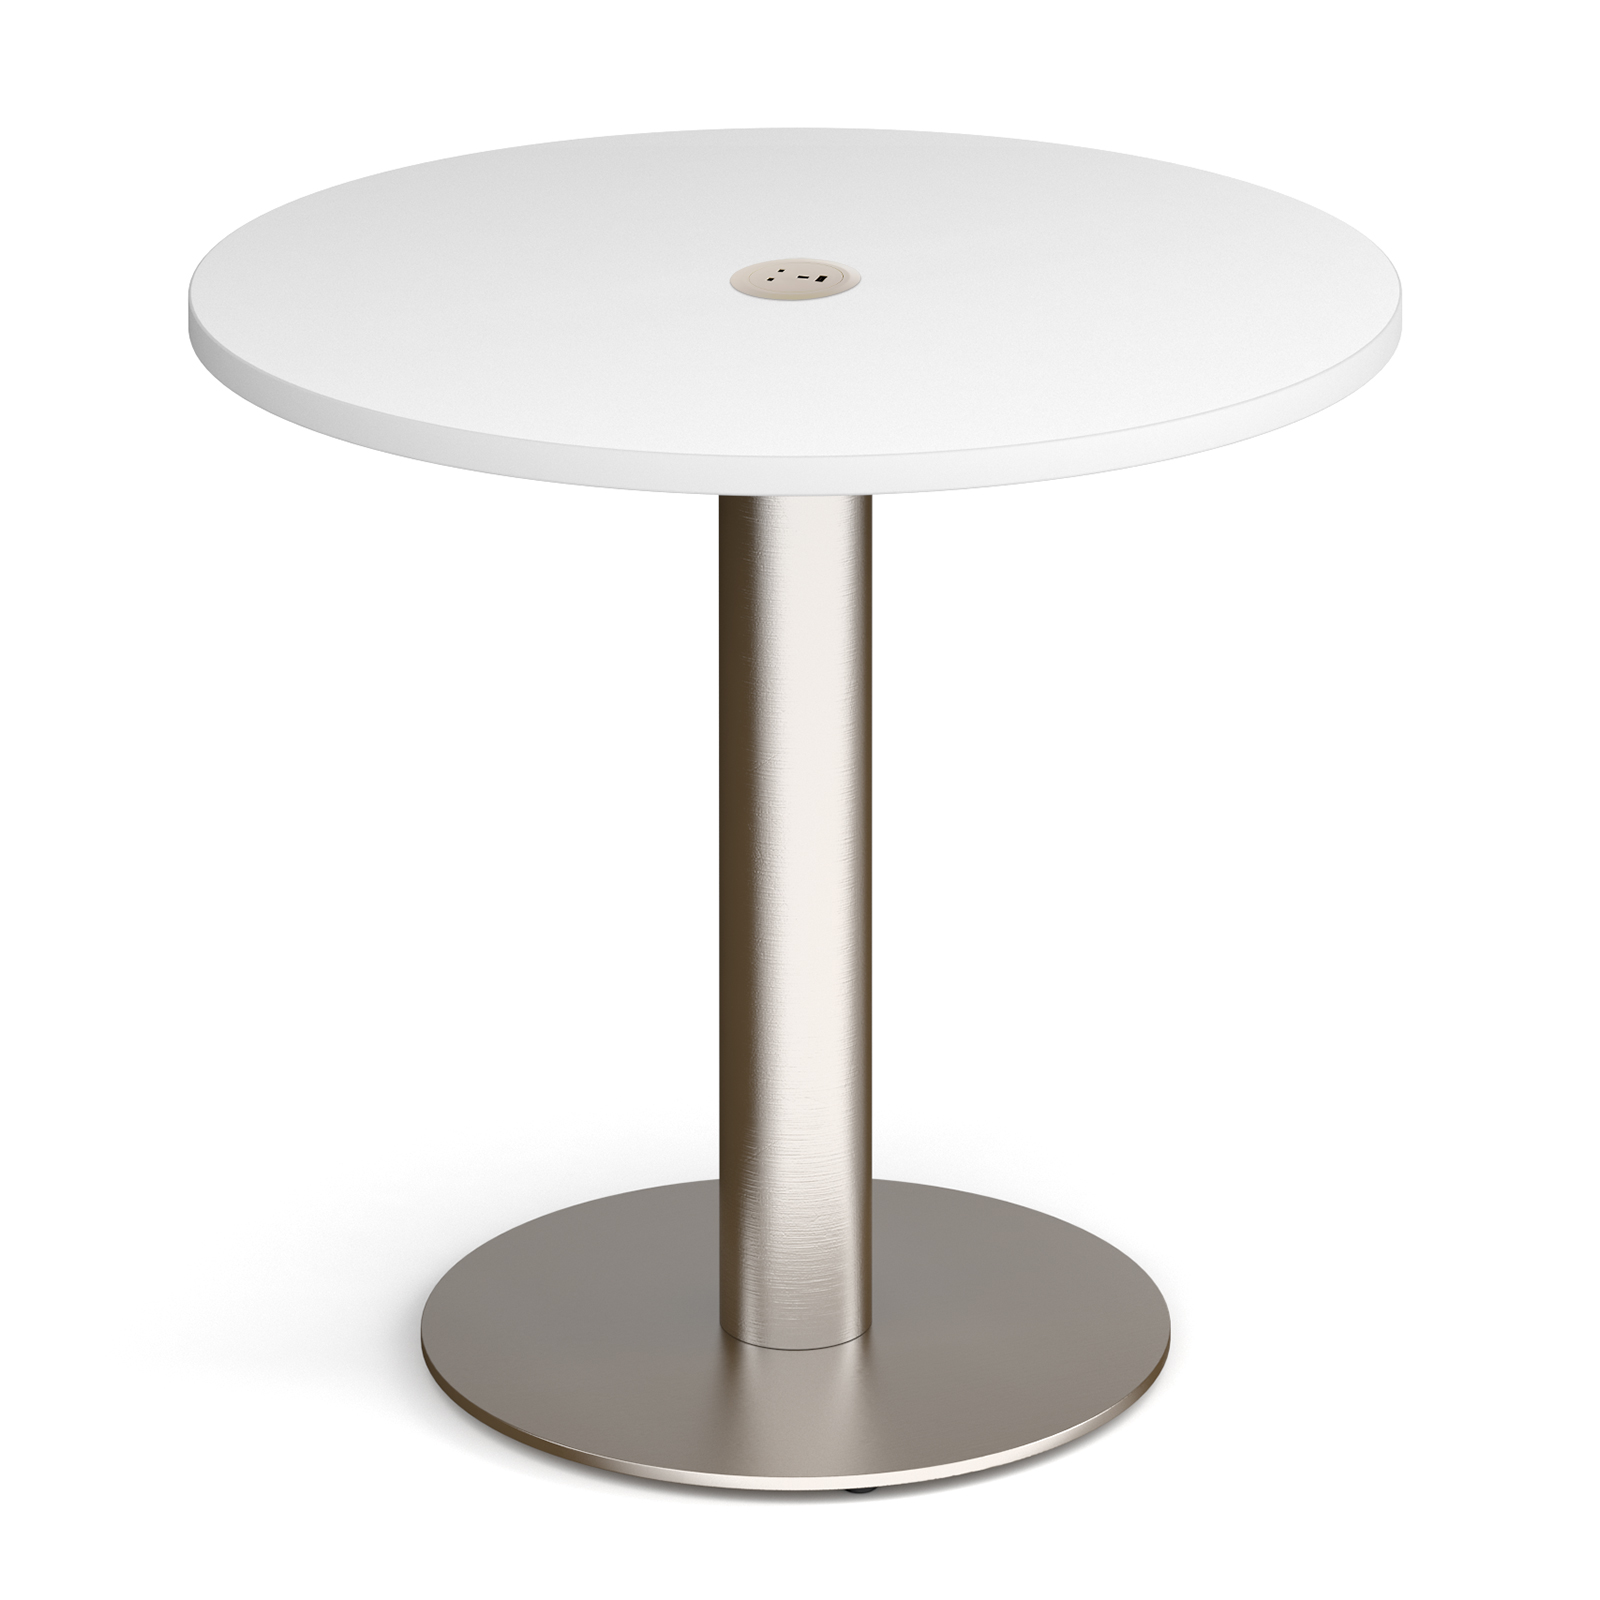 Boardroom / Meeting Monza circular dining table 800mm in white with central circular cutout and Ion power module in white